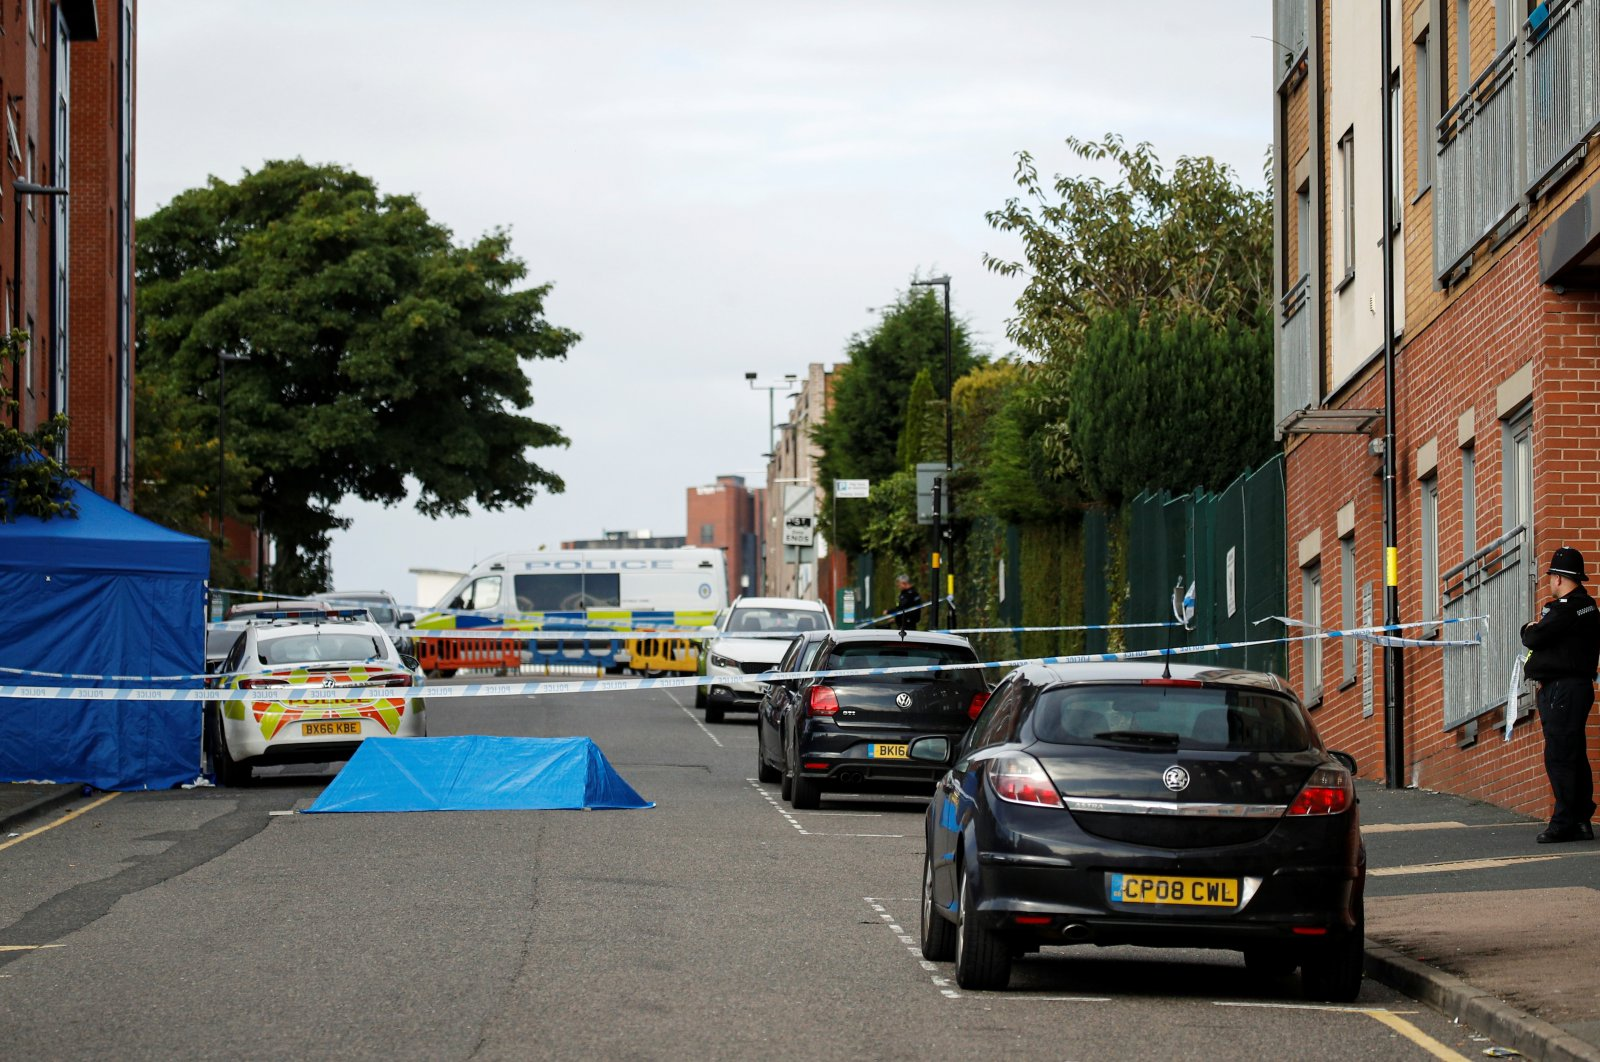 Police tape and police officers are seen near the scene of reported stabbings in Birmingham, Britain, Sept. 6, 2020. (Reuters Photo)